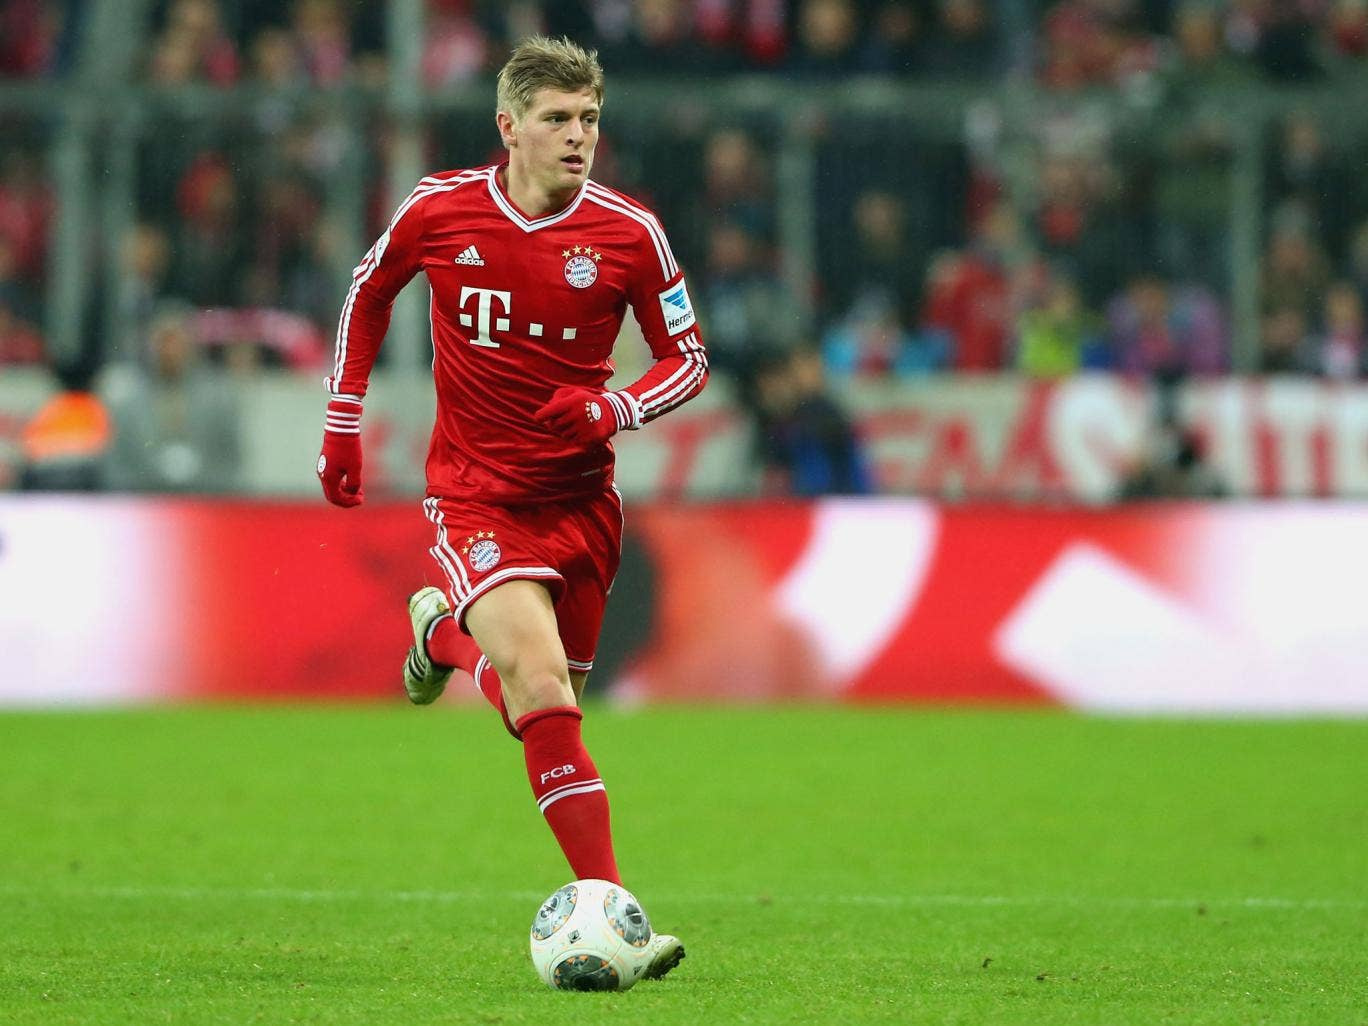 Toni Kroos has been linked with a Bayern Munich exit after talks between the midfielder and the club broke down